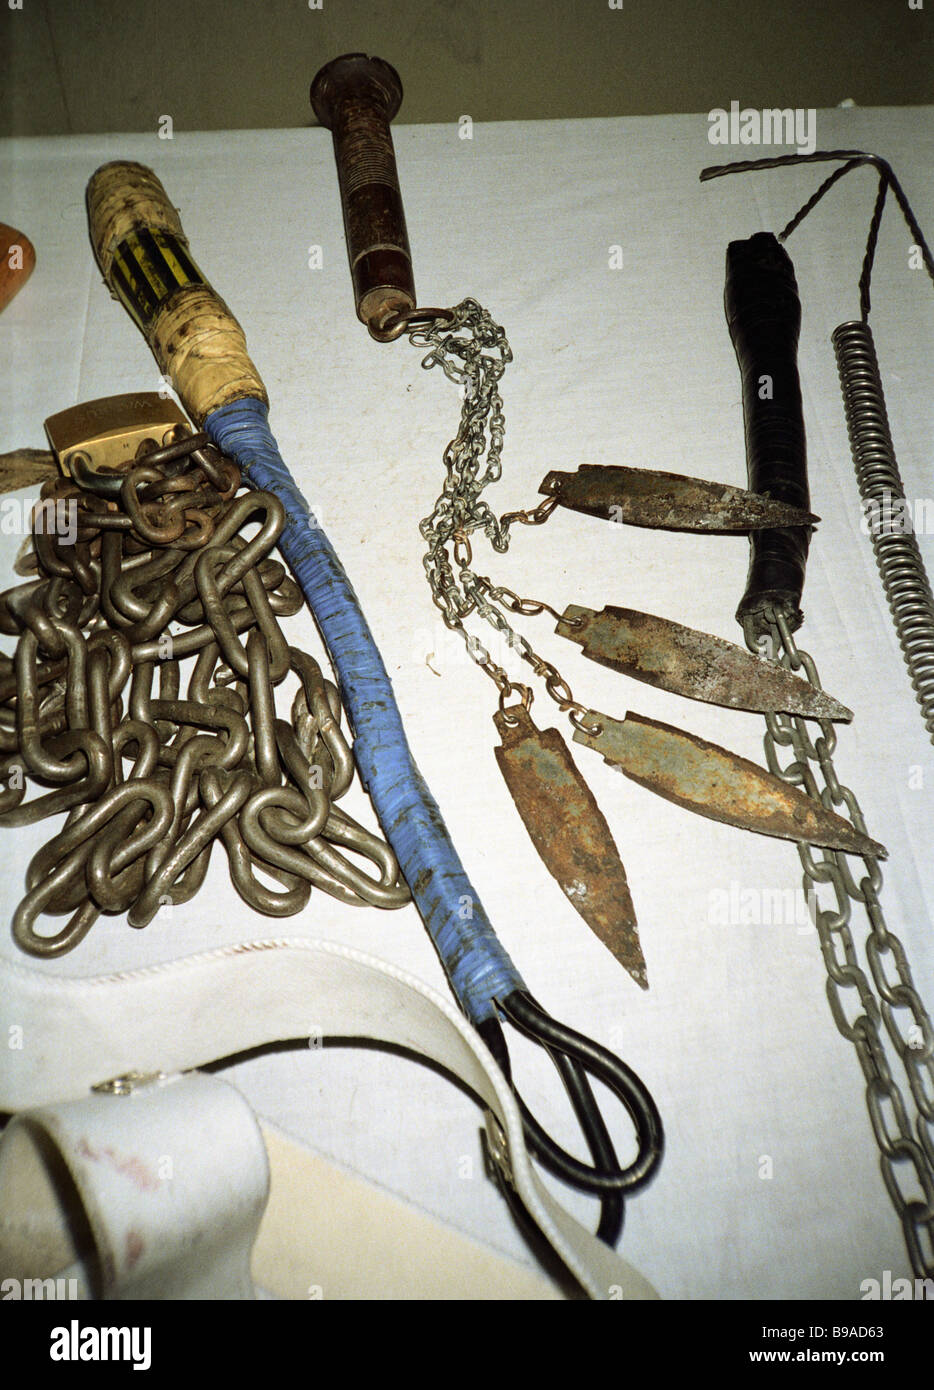 Torture instruments used by Iraqi occupants in Kuwait - Stock Image